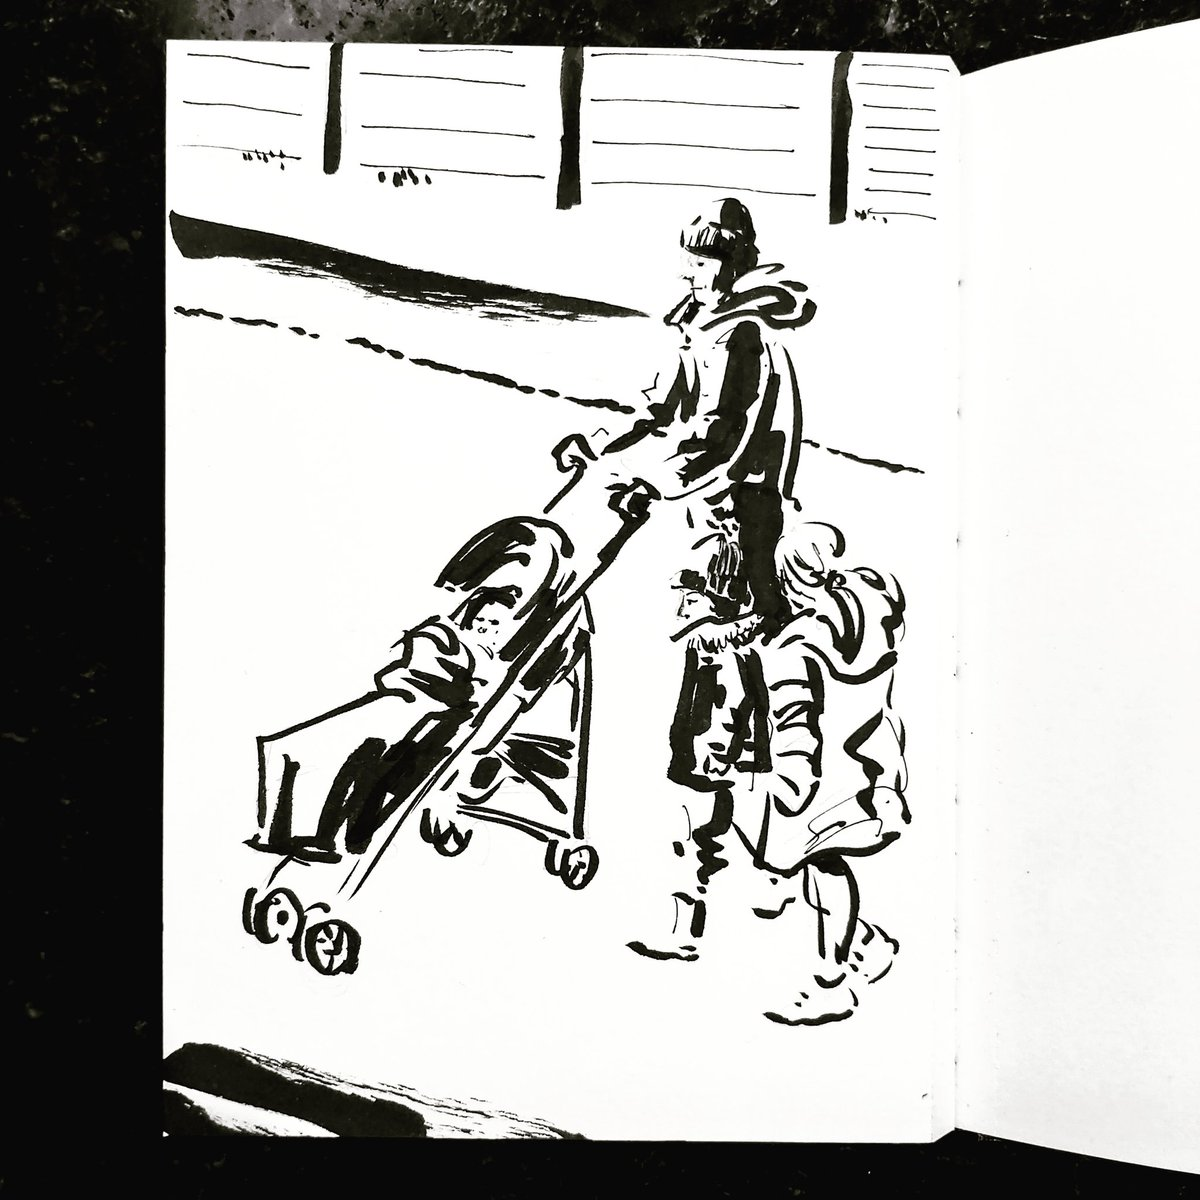 From the Inside 2, Day 21: #isolation study. Kitchen window. Passerby No 21 #isolationlife #stayathome #lockdown #lockdown2uk #sketchbook #sketch #drawing #draw #doodle #ink #inkdrawing #lineart #lifedrawing #figuredrawing #walk #artoftheday #art #artwork #artist #illustration https://t.co/5wNGYkJFVK